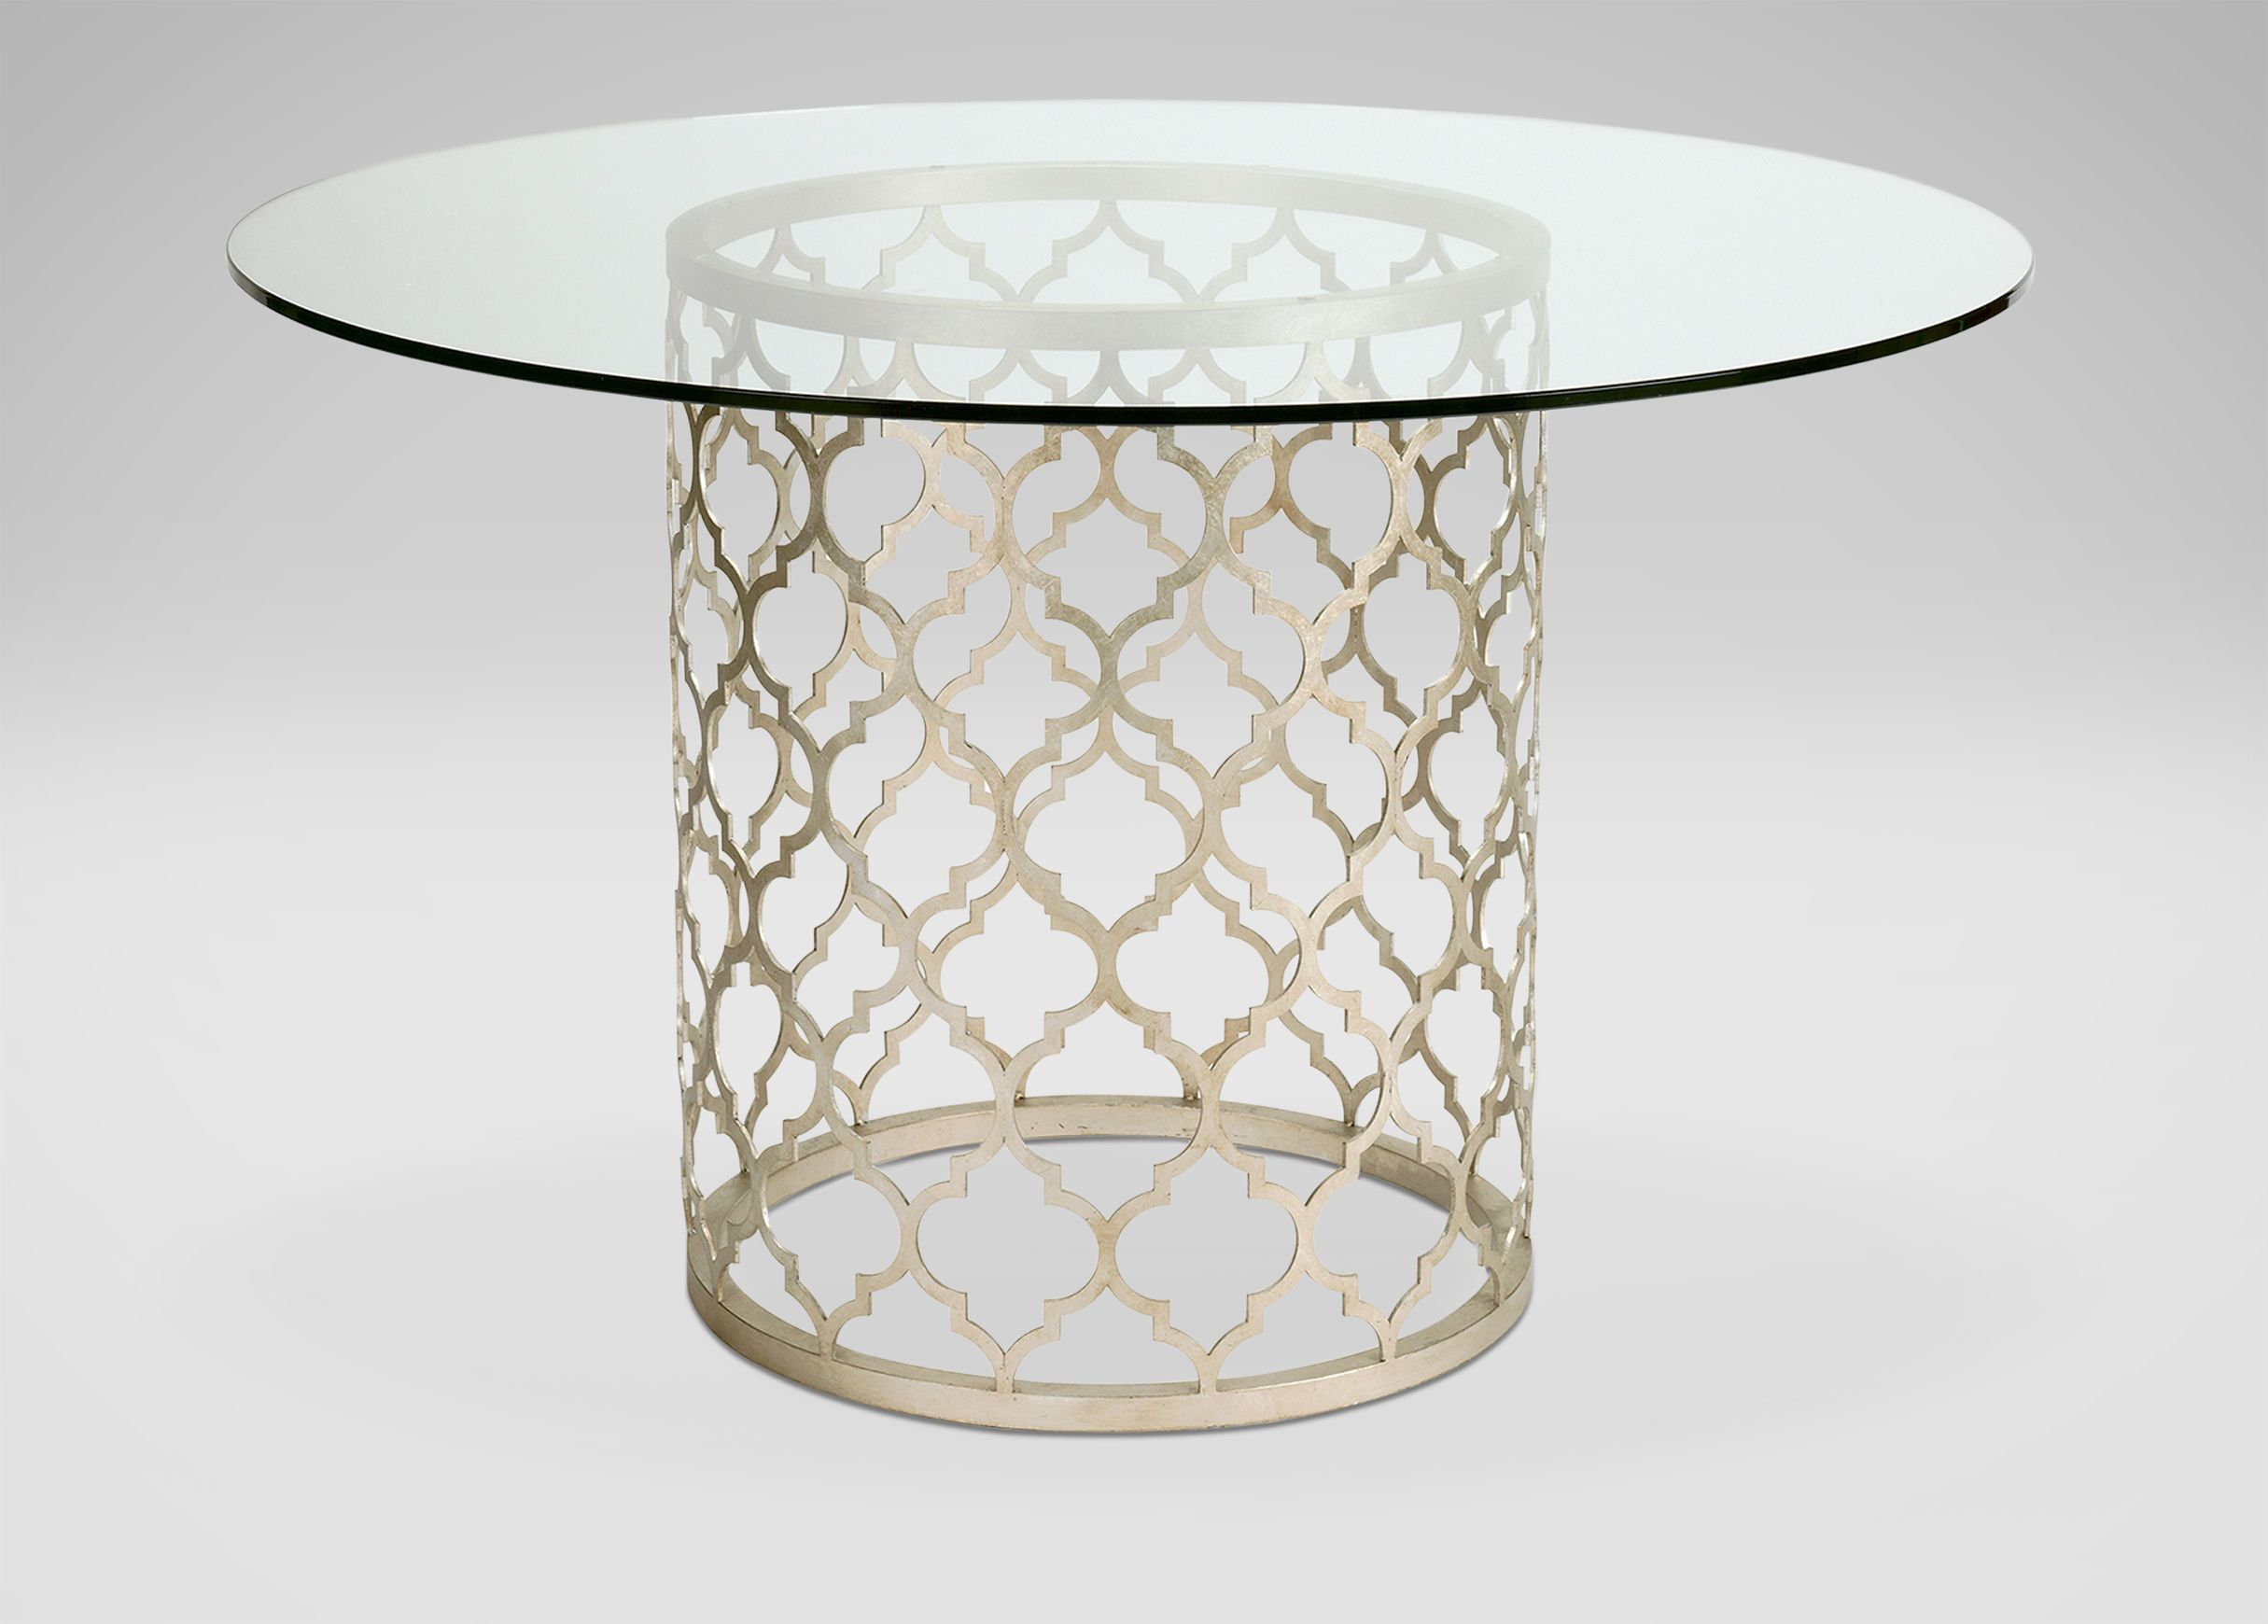 Tracery Dining Table Ethan Allen Us Dining Table Dining Table In Kitchen Furniture Dining Room Table [ 1740 x 2430 Pixel ]